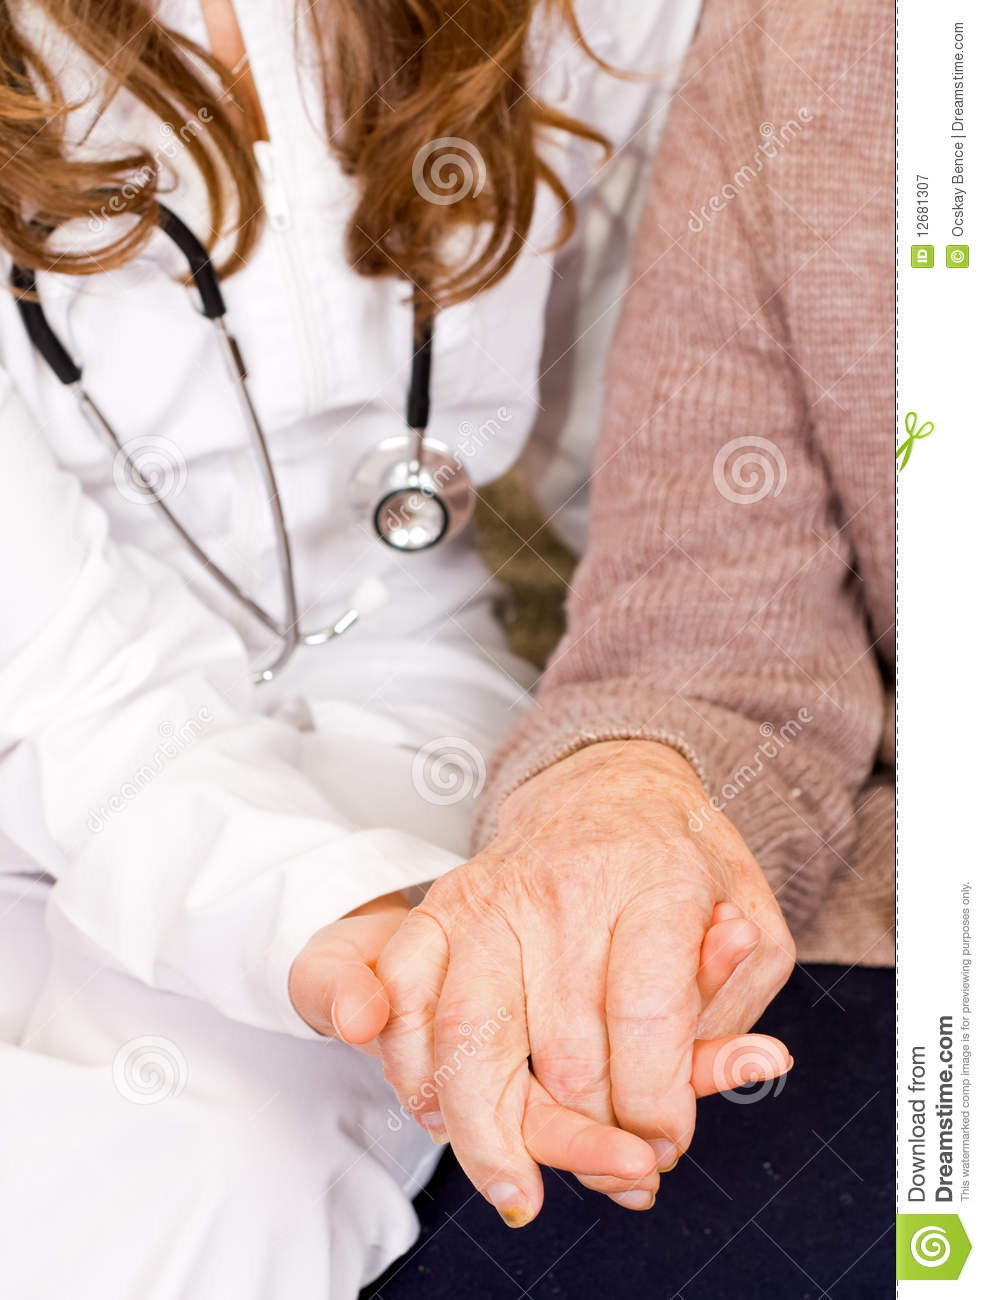 Young Doctor Holds Old Mans Hand Royalty Free Stock Photography - Image 12681307-6272